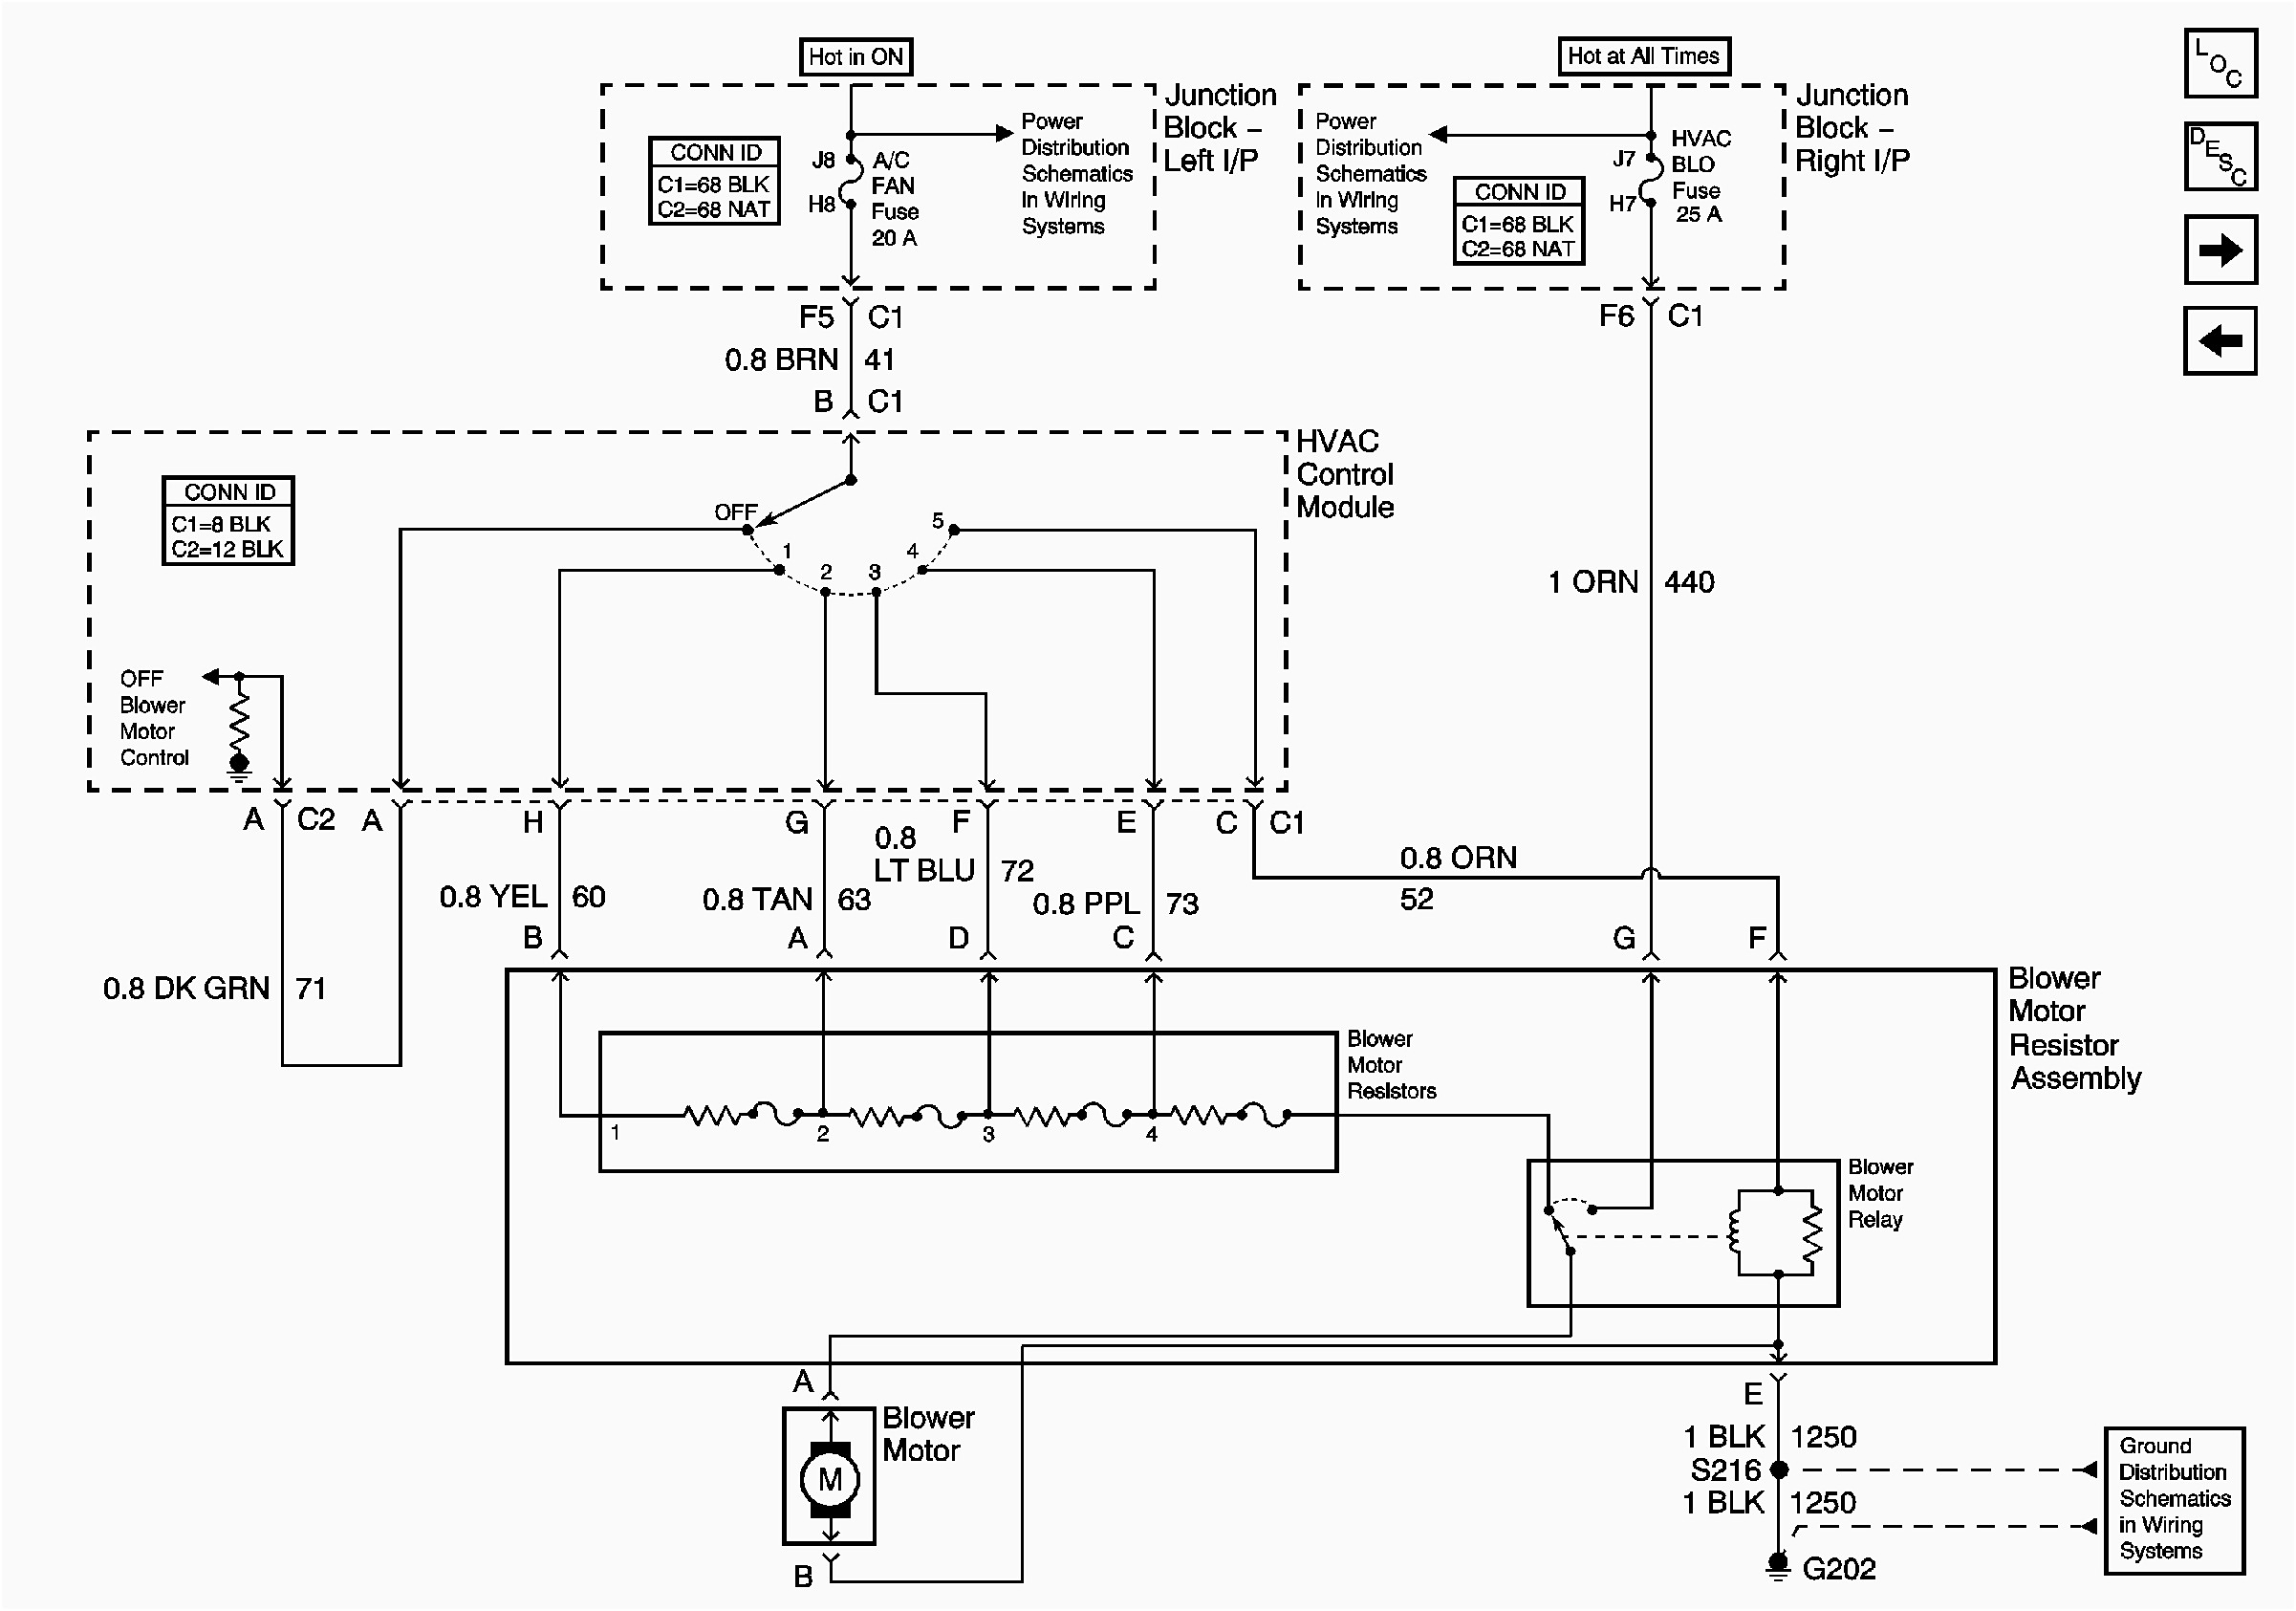 Wiring Diagram Blower Motor Furnace Fresh Aprilaire 700 Best Of For - Aprilaire 700 Wiring Diagram